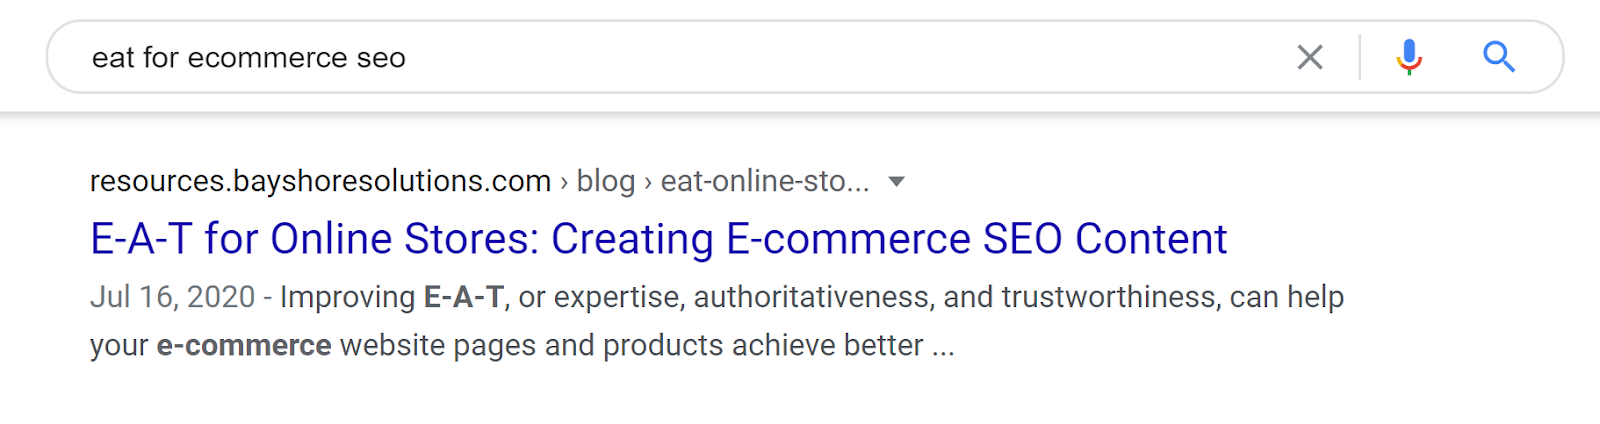 Google desktop search snippet for a blog post about E-A-T for Online Stores.